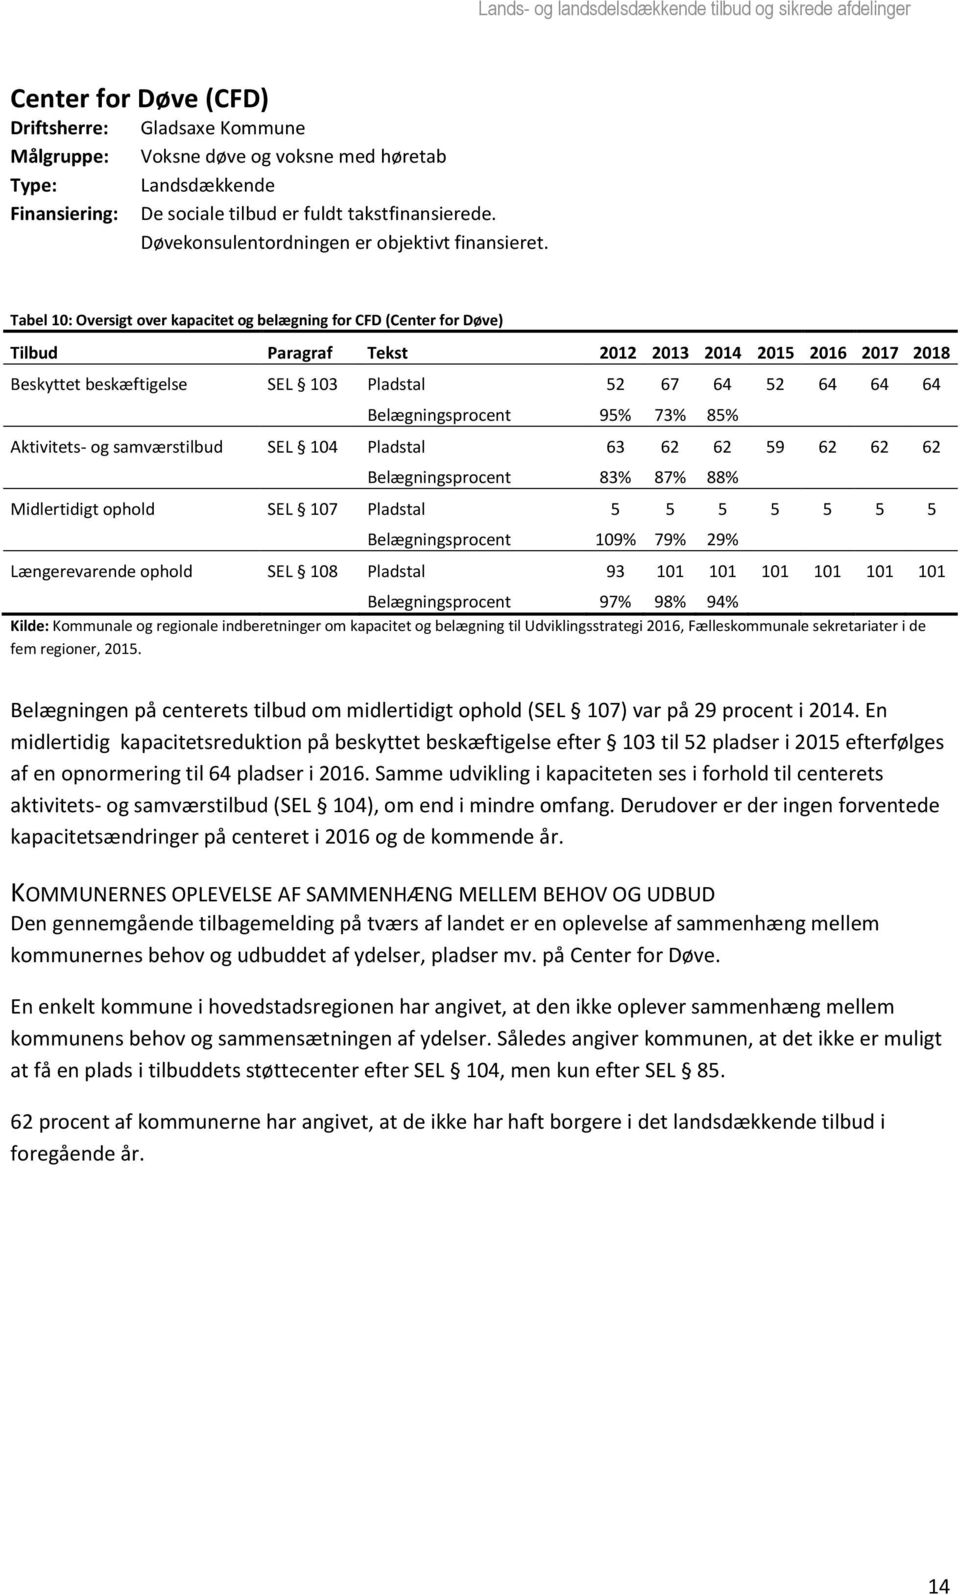 Tabel 10: Oversigt over kapacitet og belægning for CFD (Center for Døve) Tilbud Paragraf Tekst 2012 2013 2014 2015 2016 2017 2018 Beskyttet beskæftigelse SEL 103 Pladstal 52 67 64 52 64 64 64